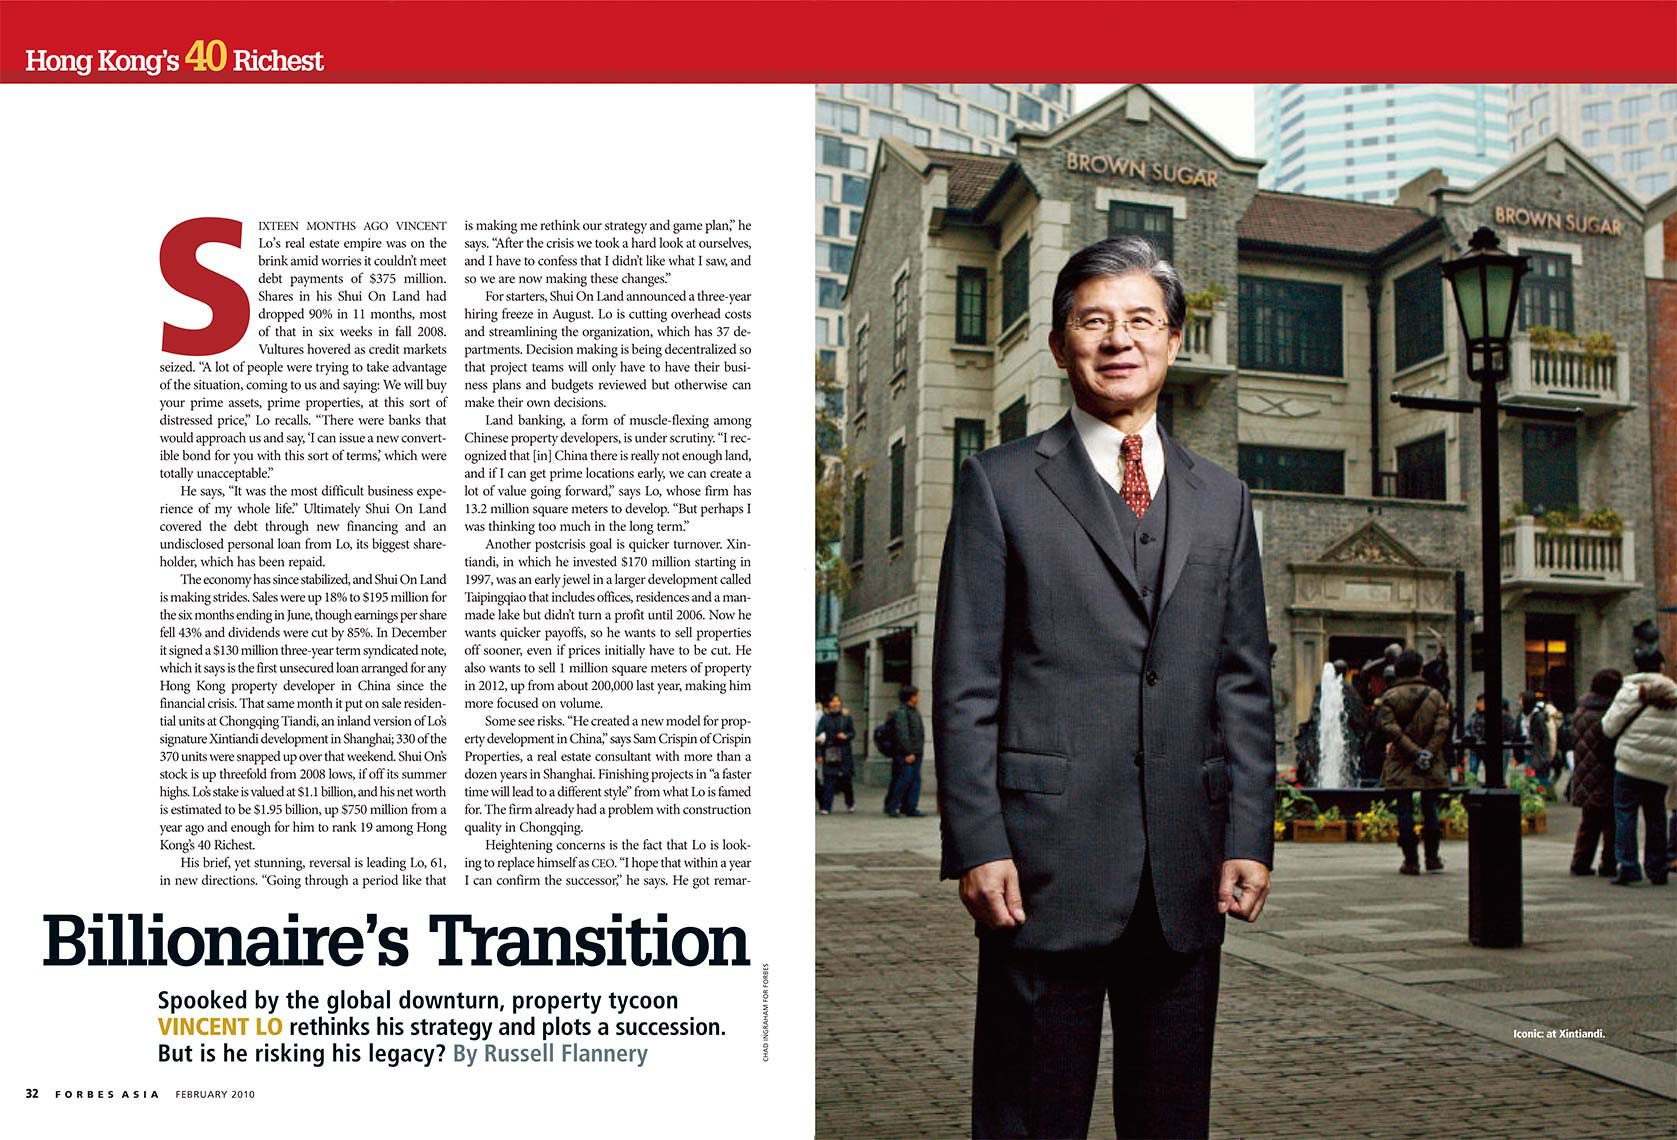 forbes_asia_february_2010_2_chad_ingraham.jpg